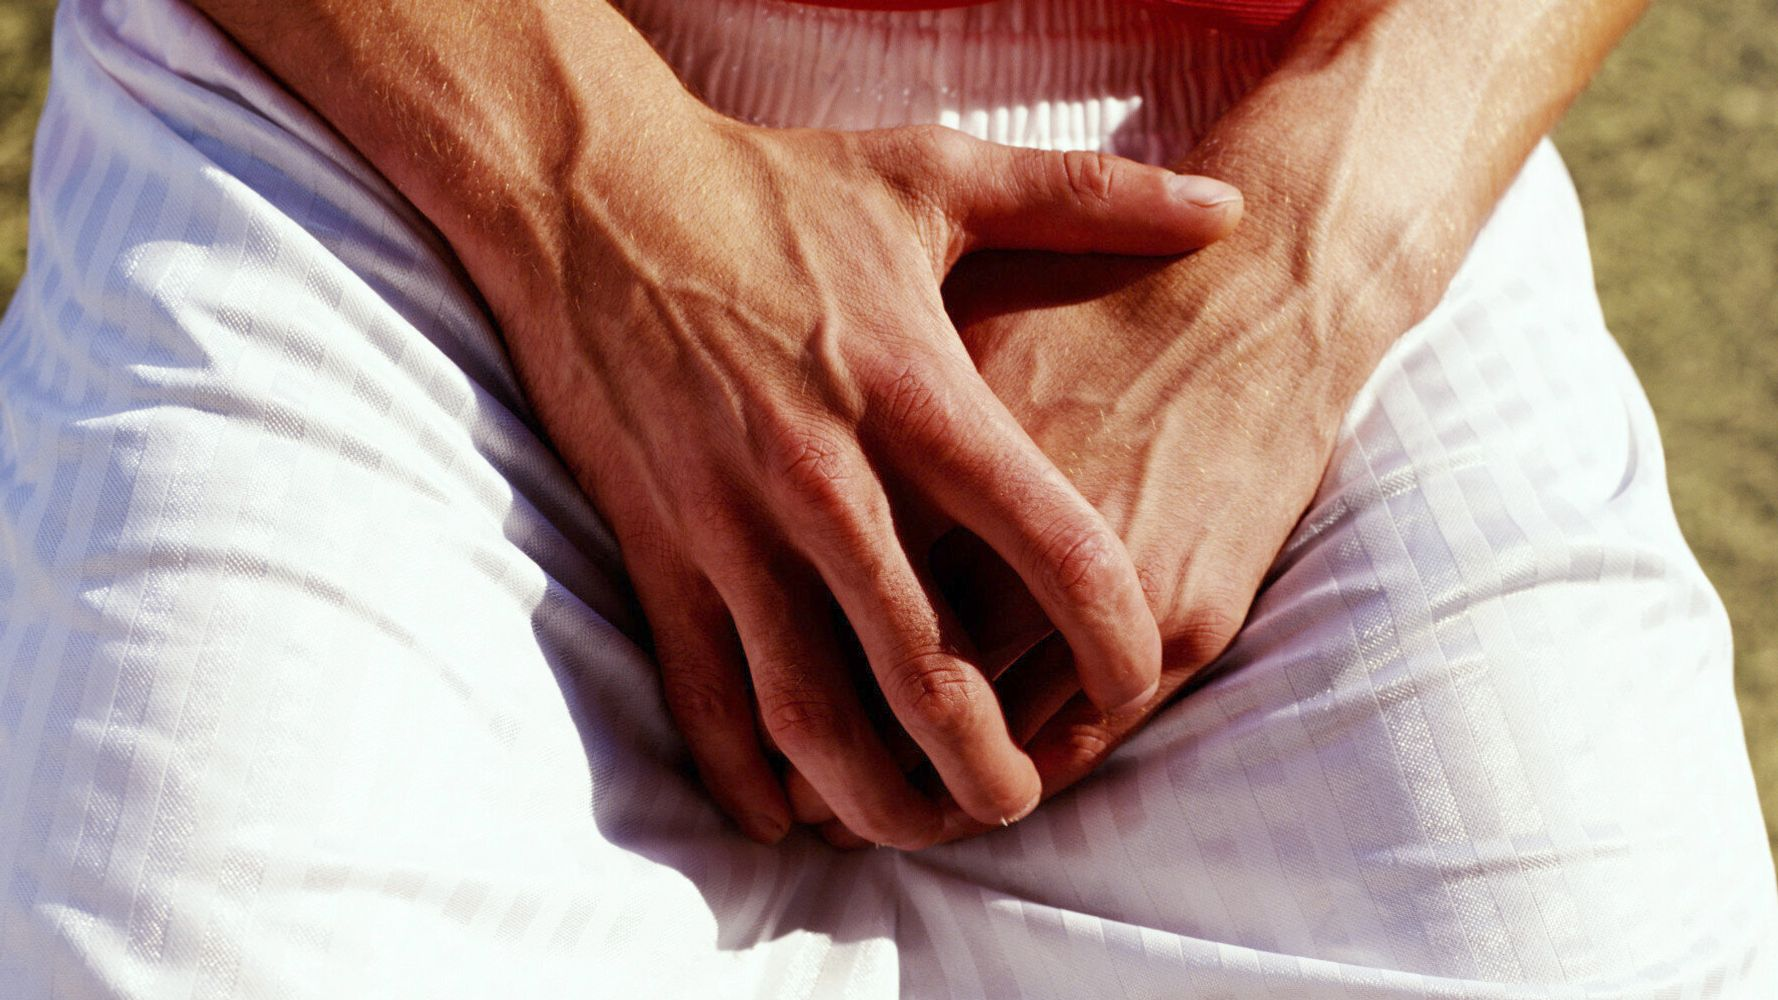 Penile Cancer: Symptoms Men Should Look Out For | HuffPost